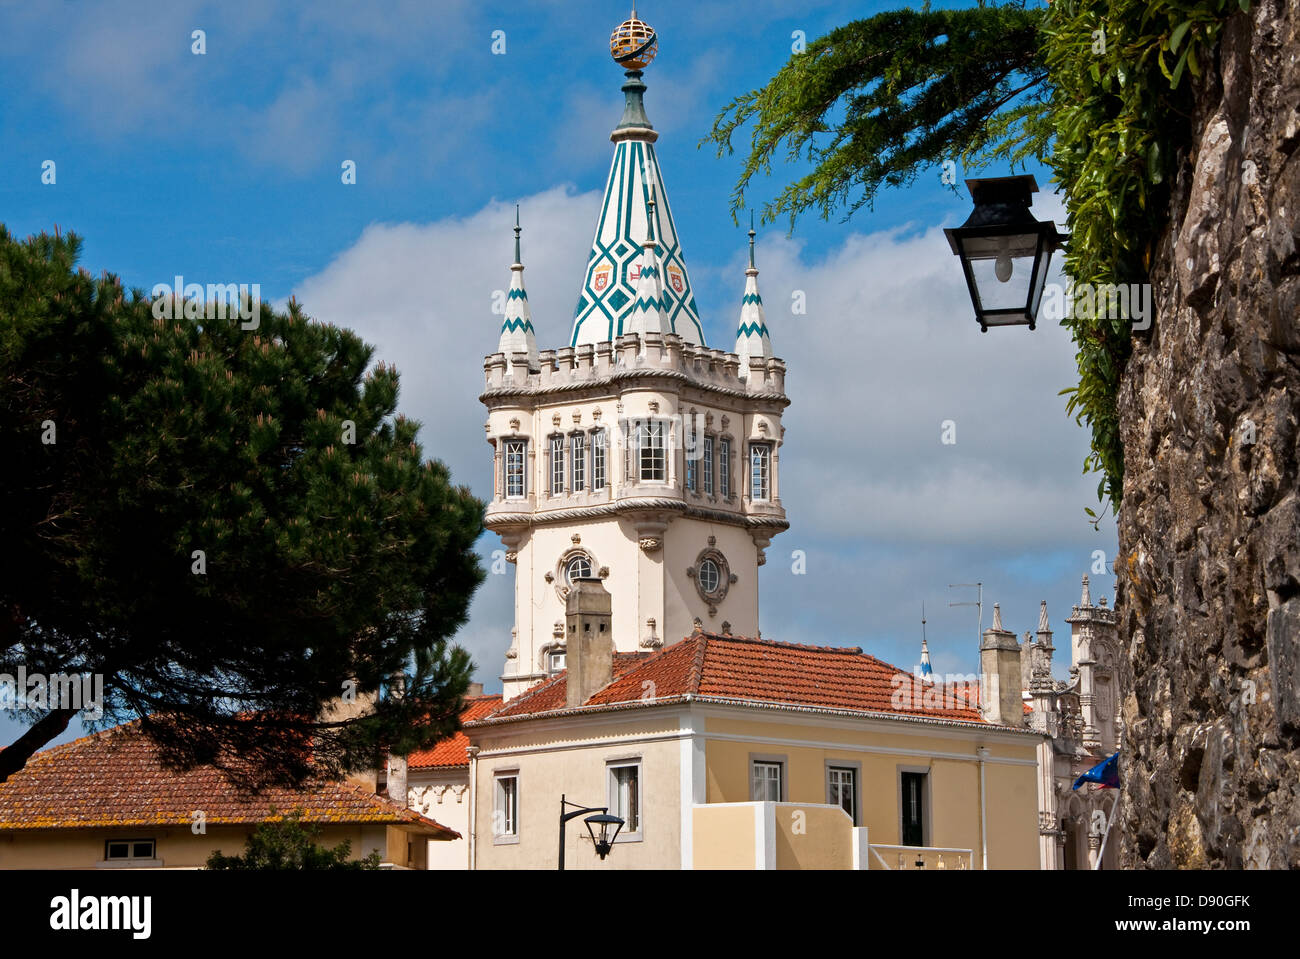 Sintra, Portugal, City Hall's fanciful tower of 19th century romantic architecture. - Stock Image